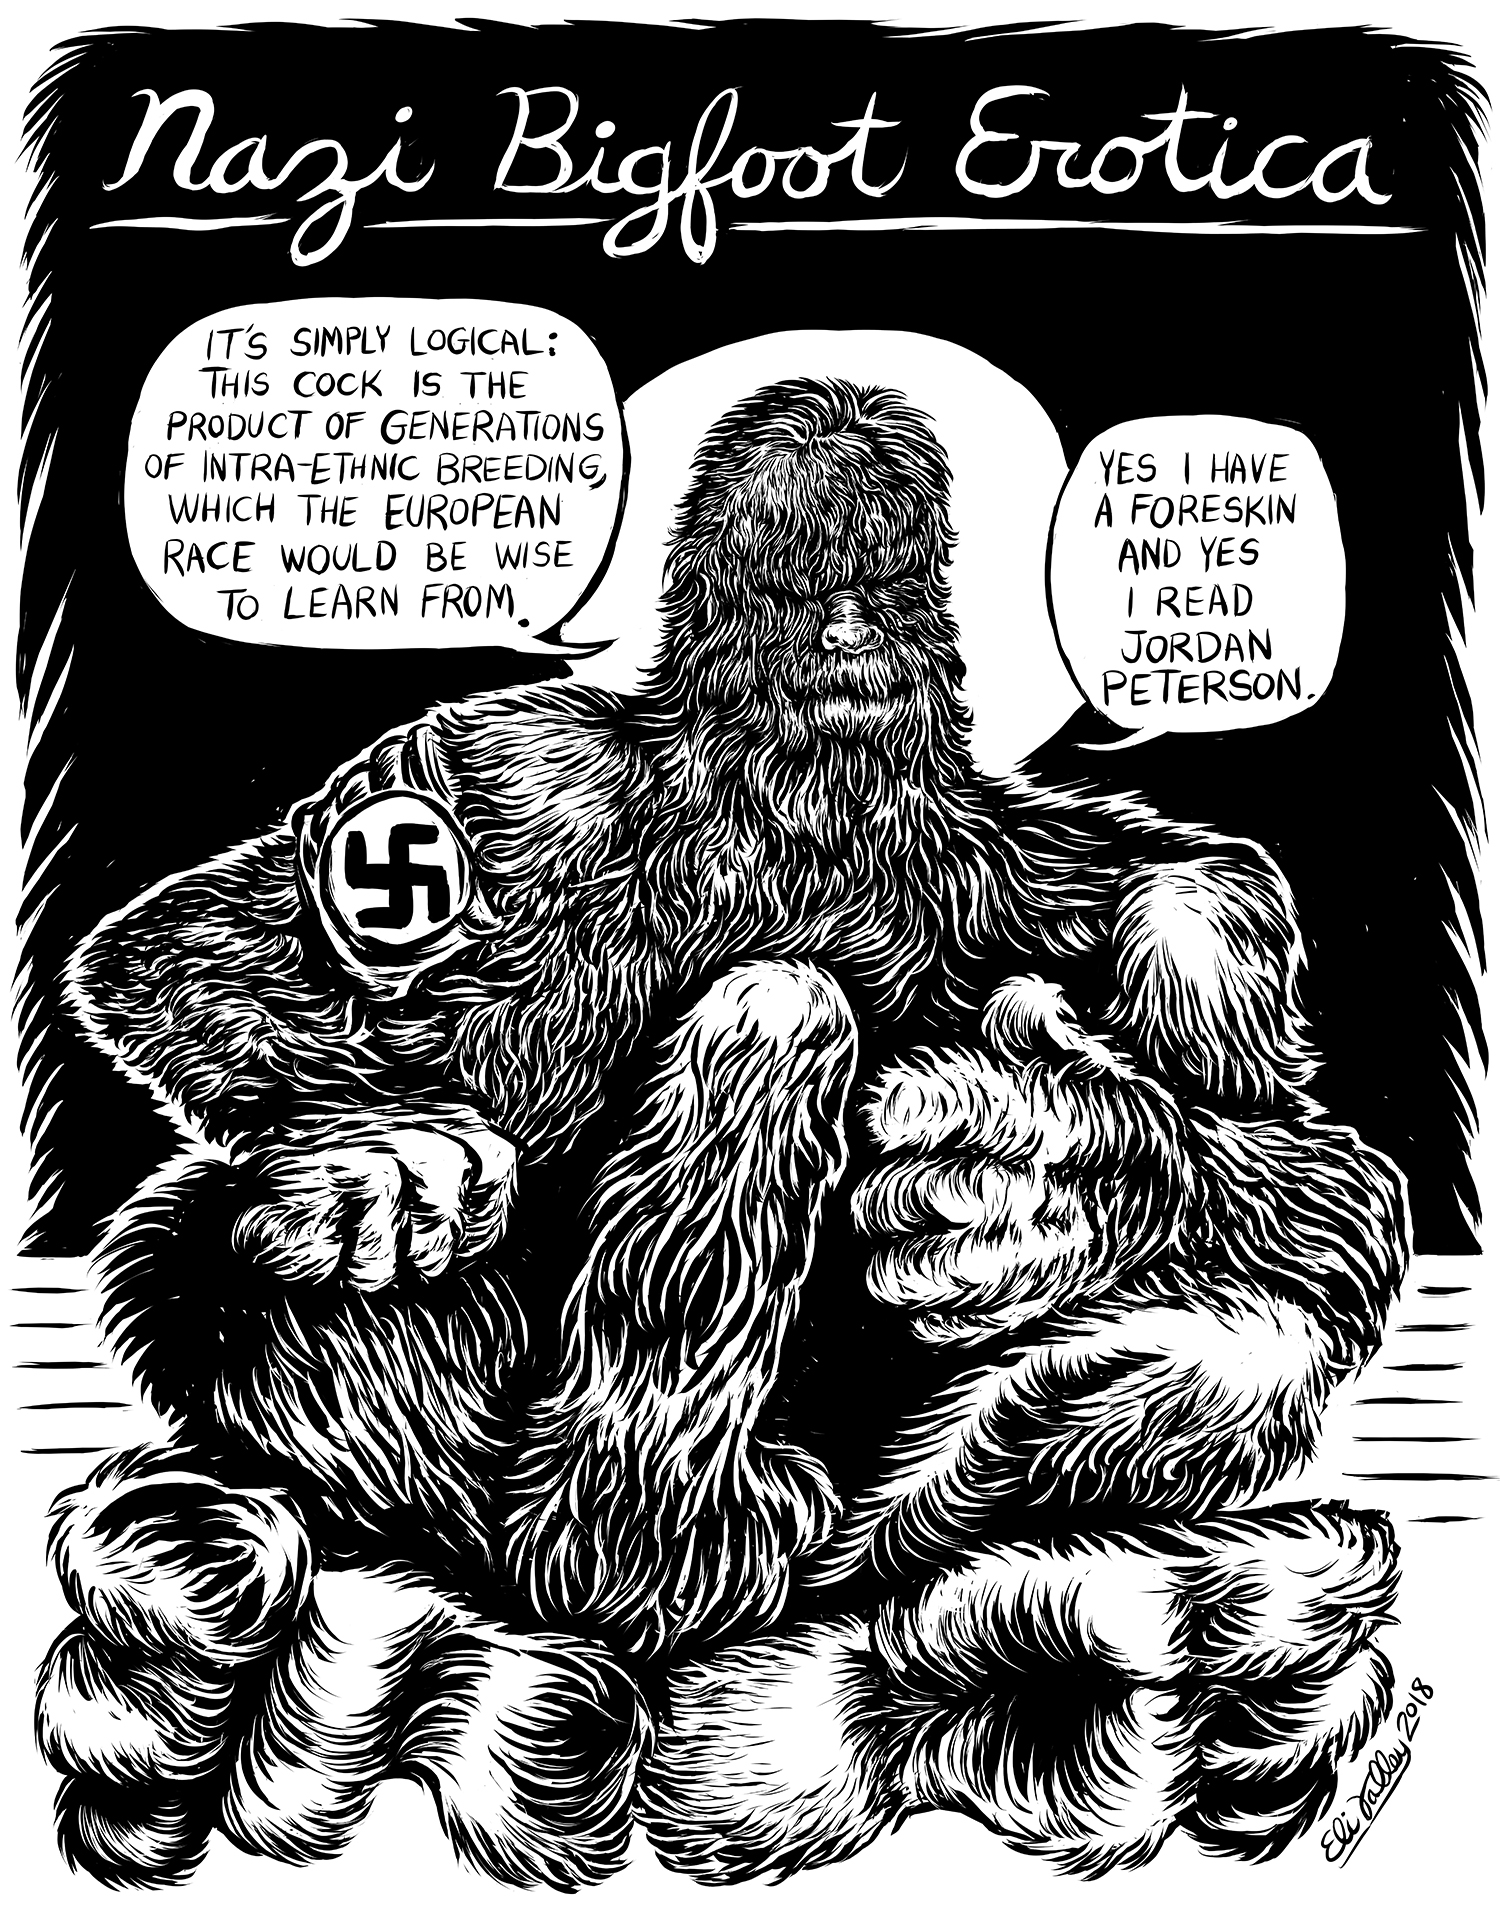 Nazi Bigfoot Erotica, 7/30/2018